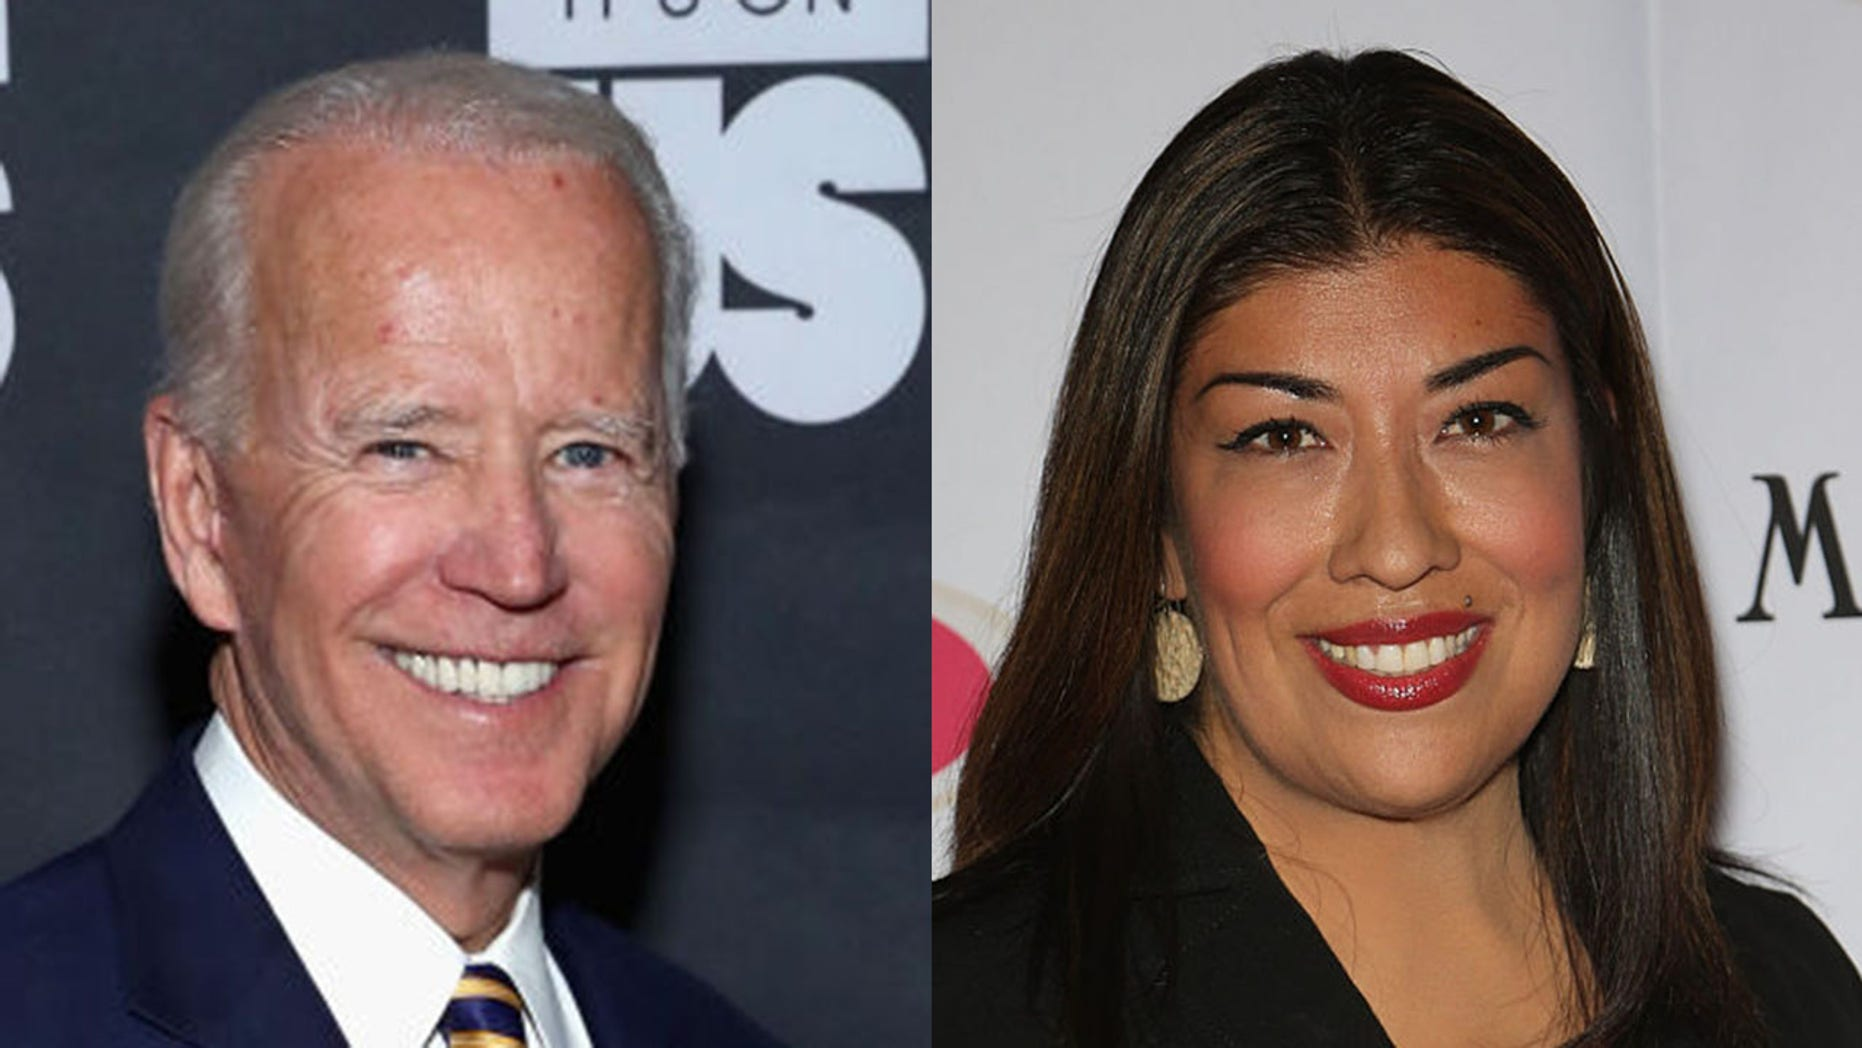 Joe Biden doesn't recall alleged kissing incident detailed in article